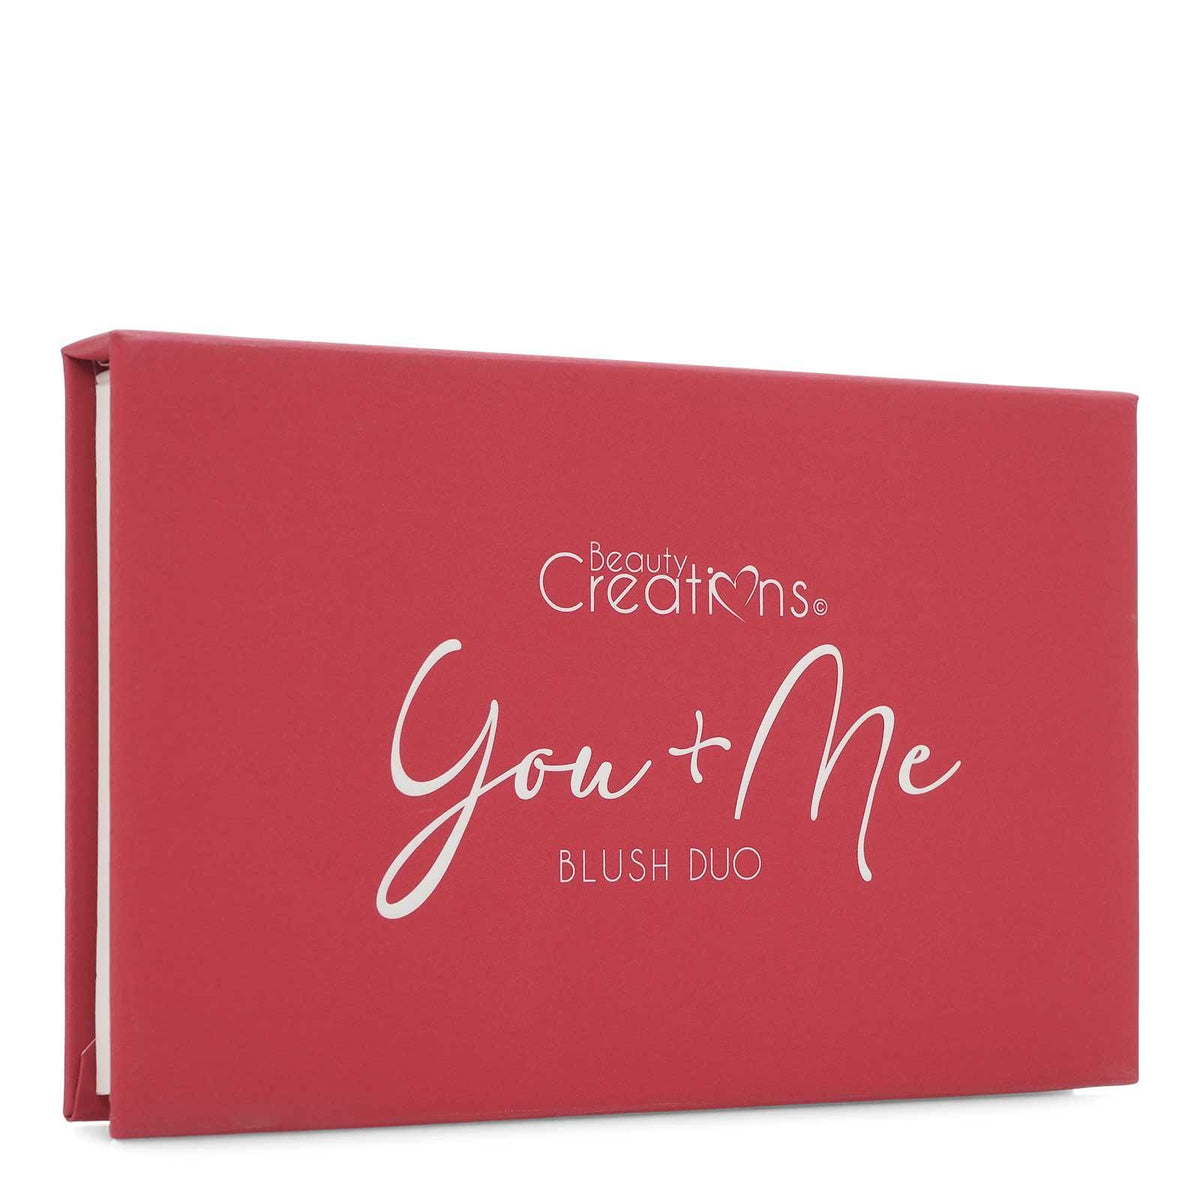 Beauty Creations You & Me Blush Duo- BV2 (6/cs)